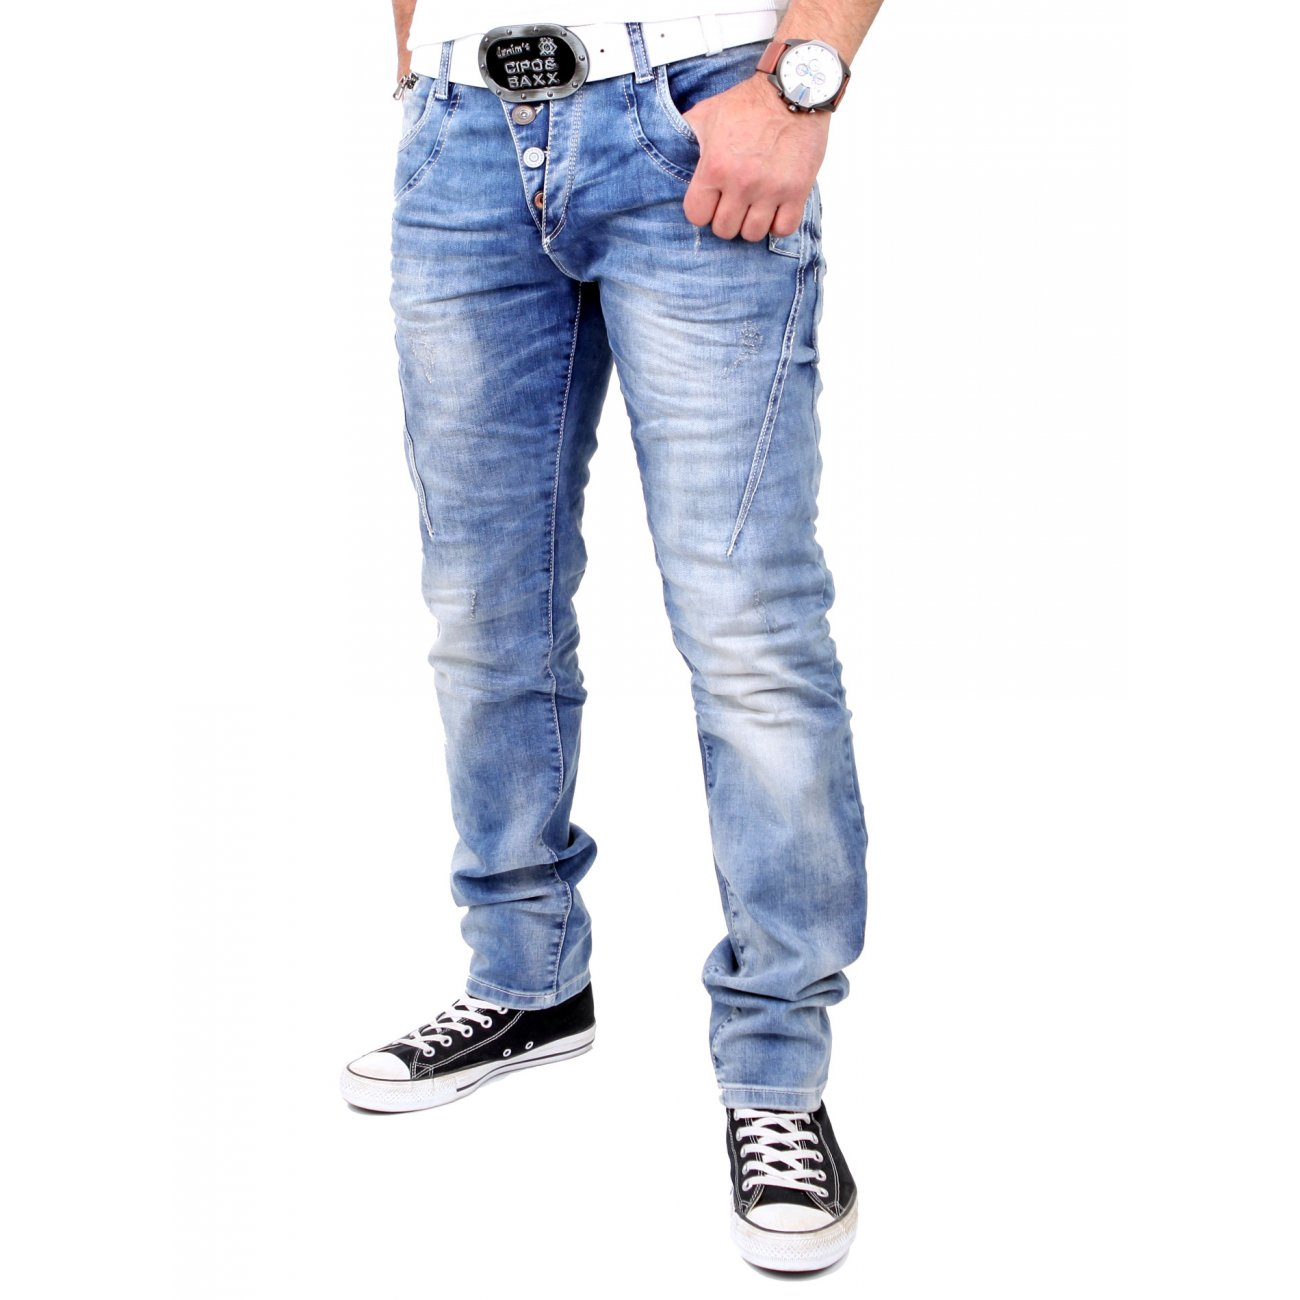 cipo baxx herren jeans used look slim fit jeanshose cd. Black Bedroom Furniture Sets. Home Design Ideas